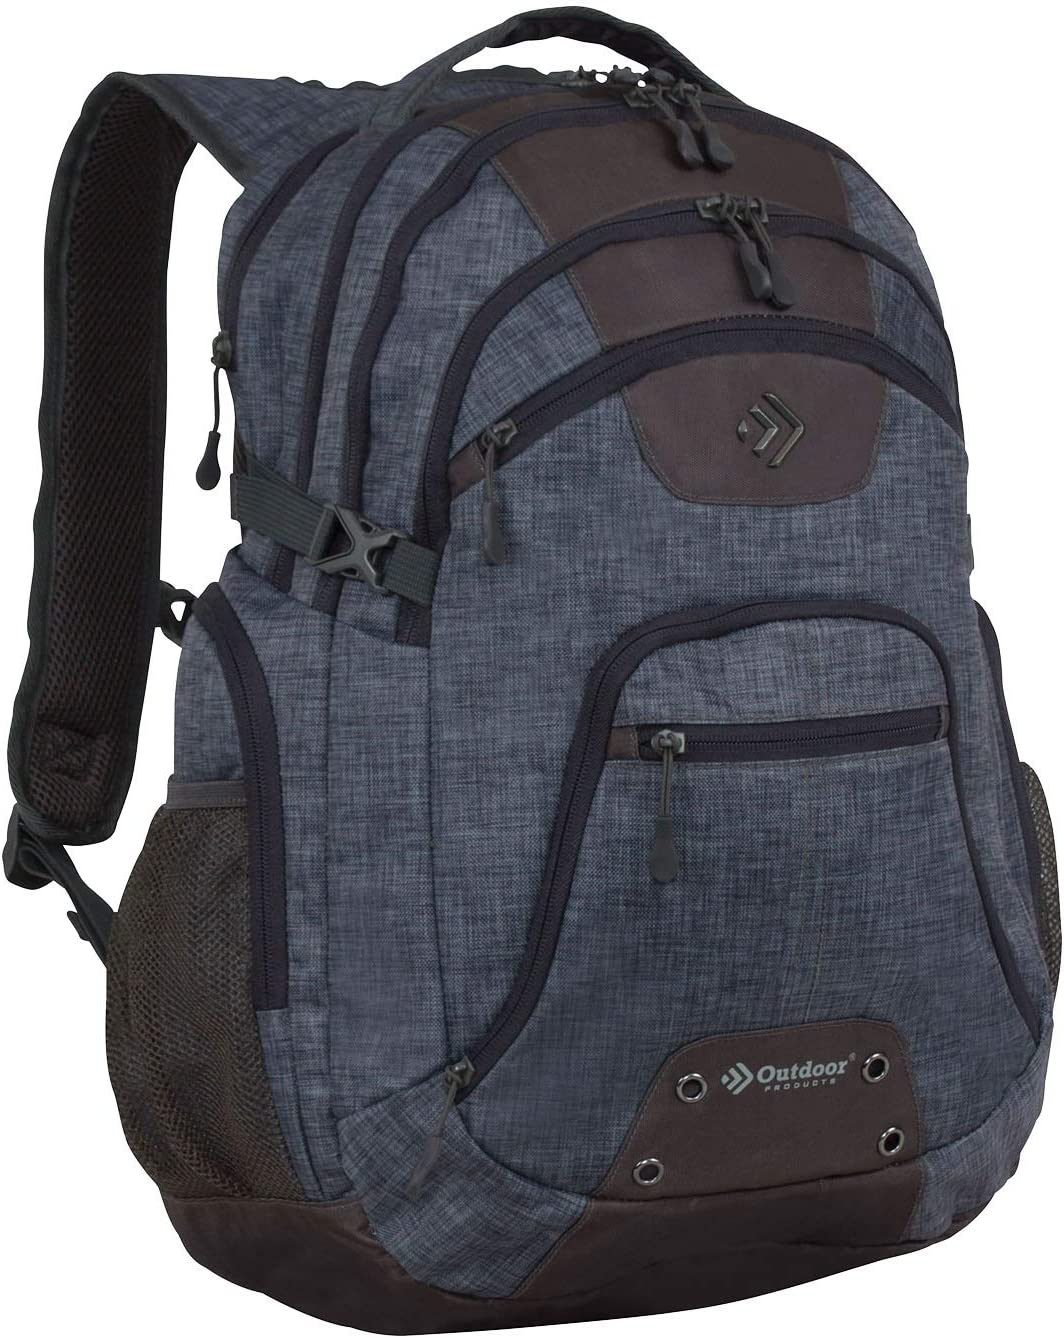 Outdoor Products Module Day Pack, Heathered Print: Sports & Outdoors